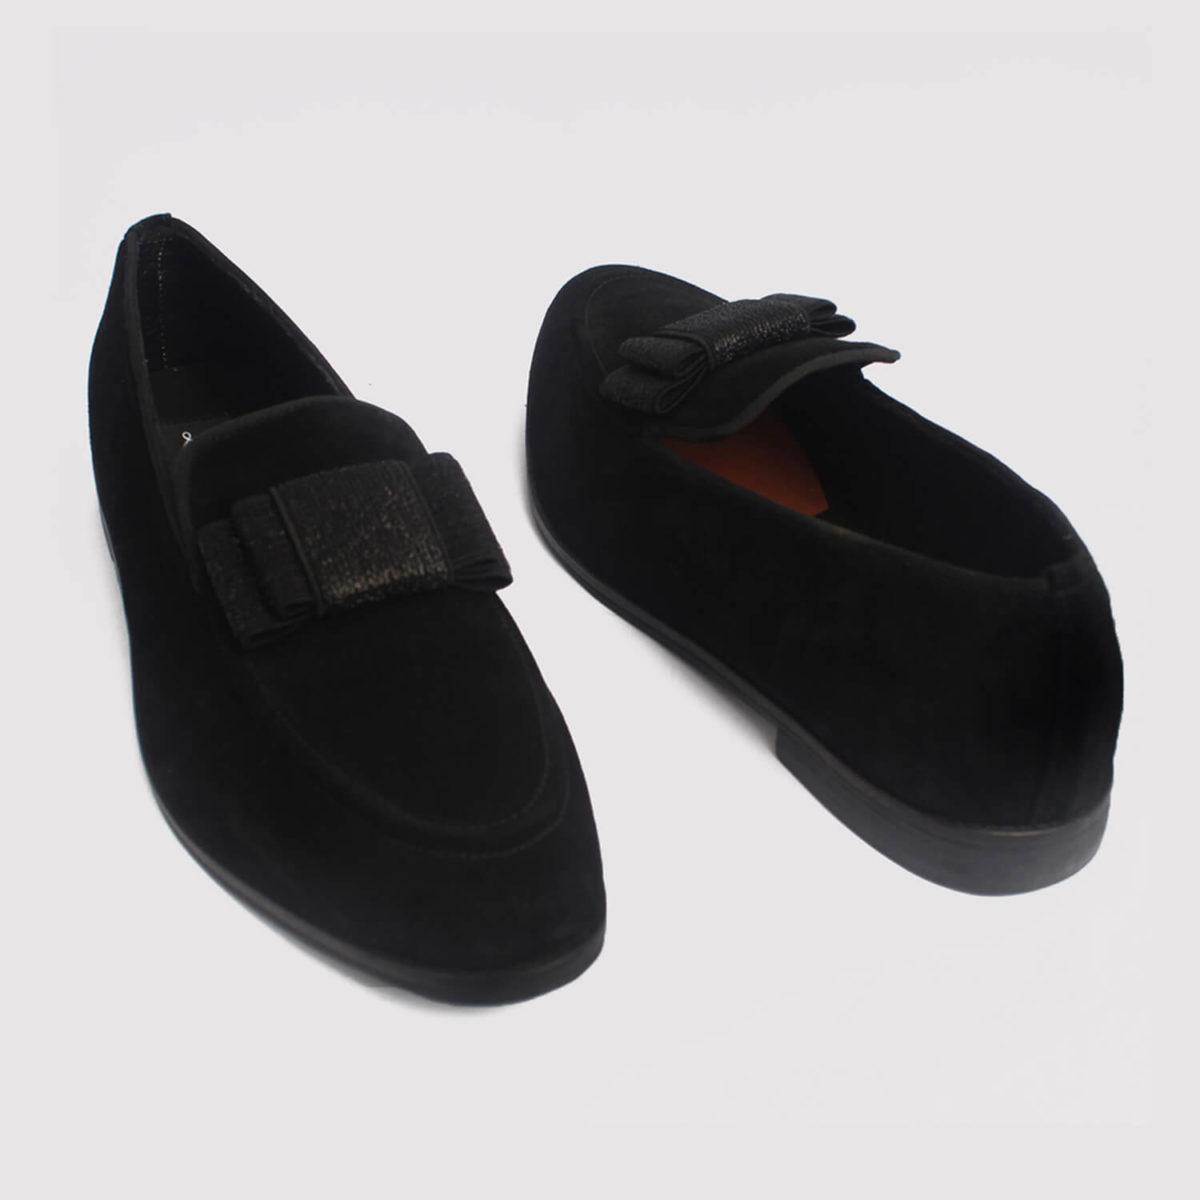 trevor bow loafers black suede zorkle shoes lagos nigeria